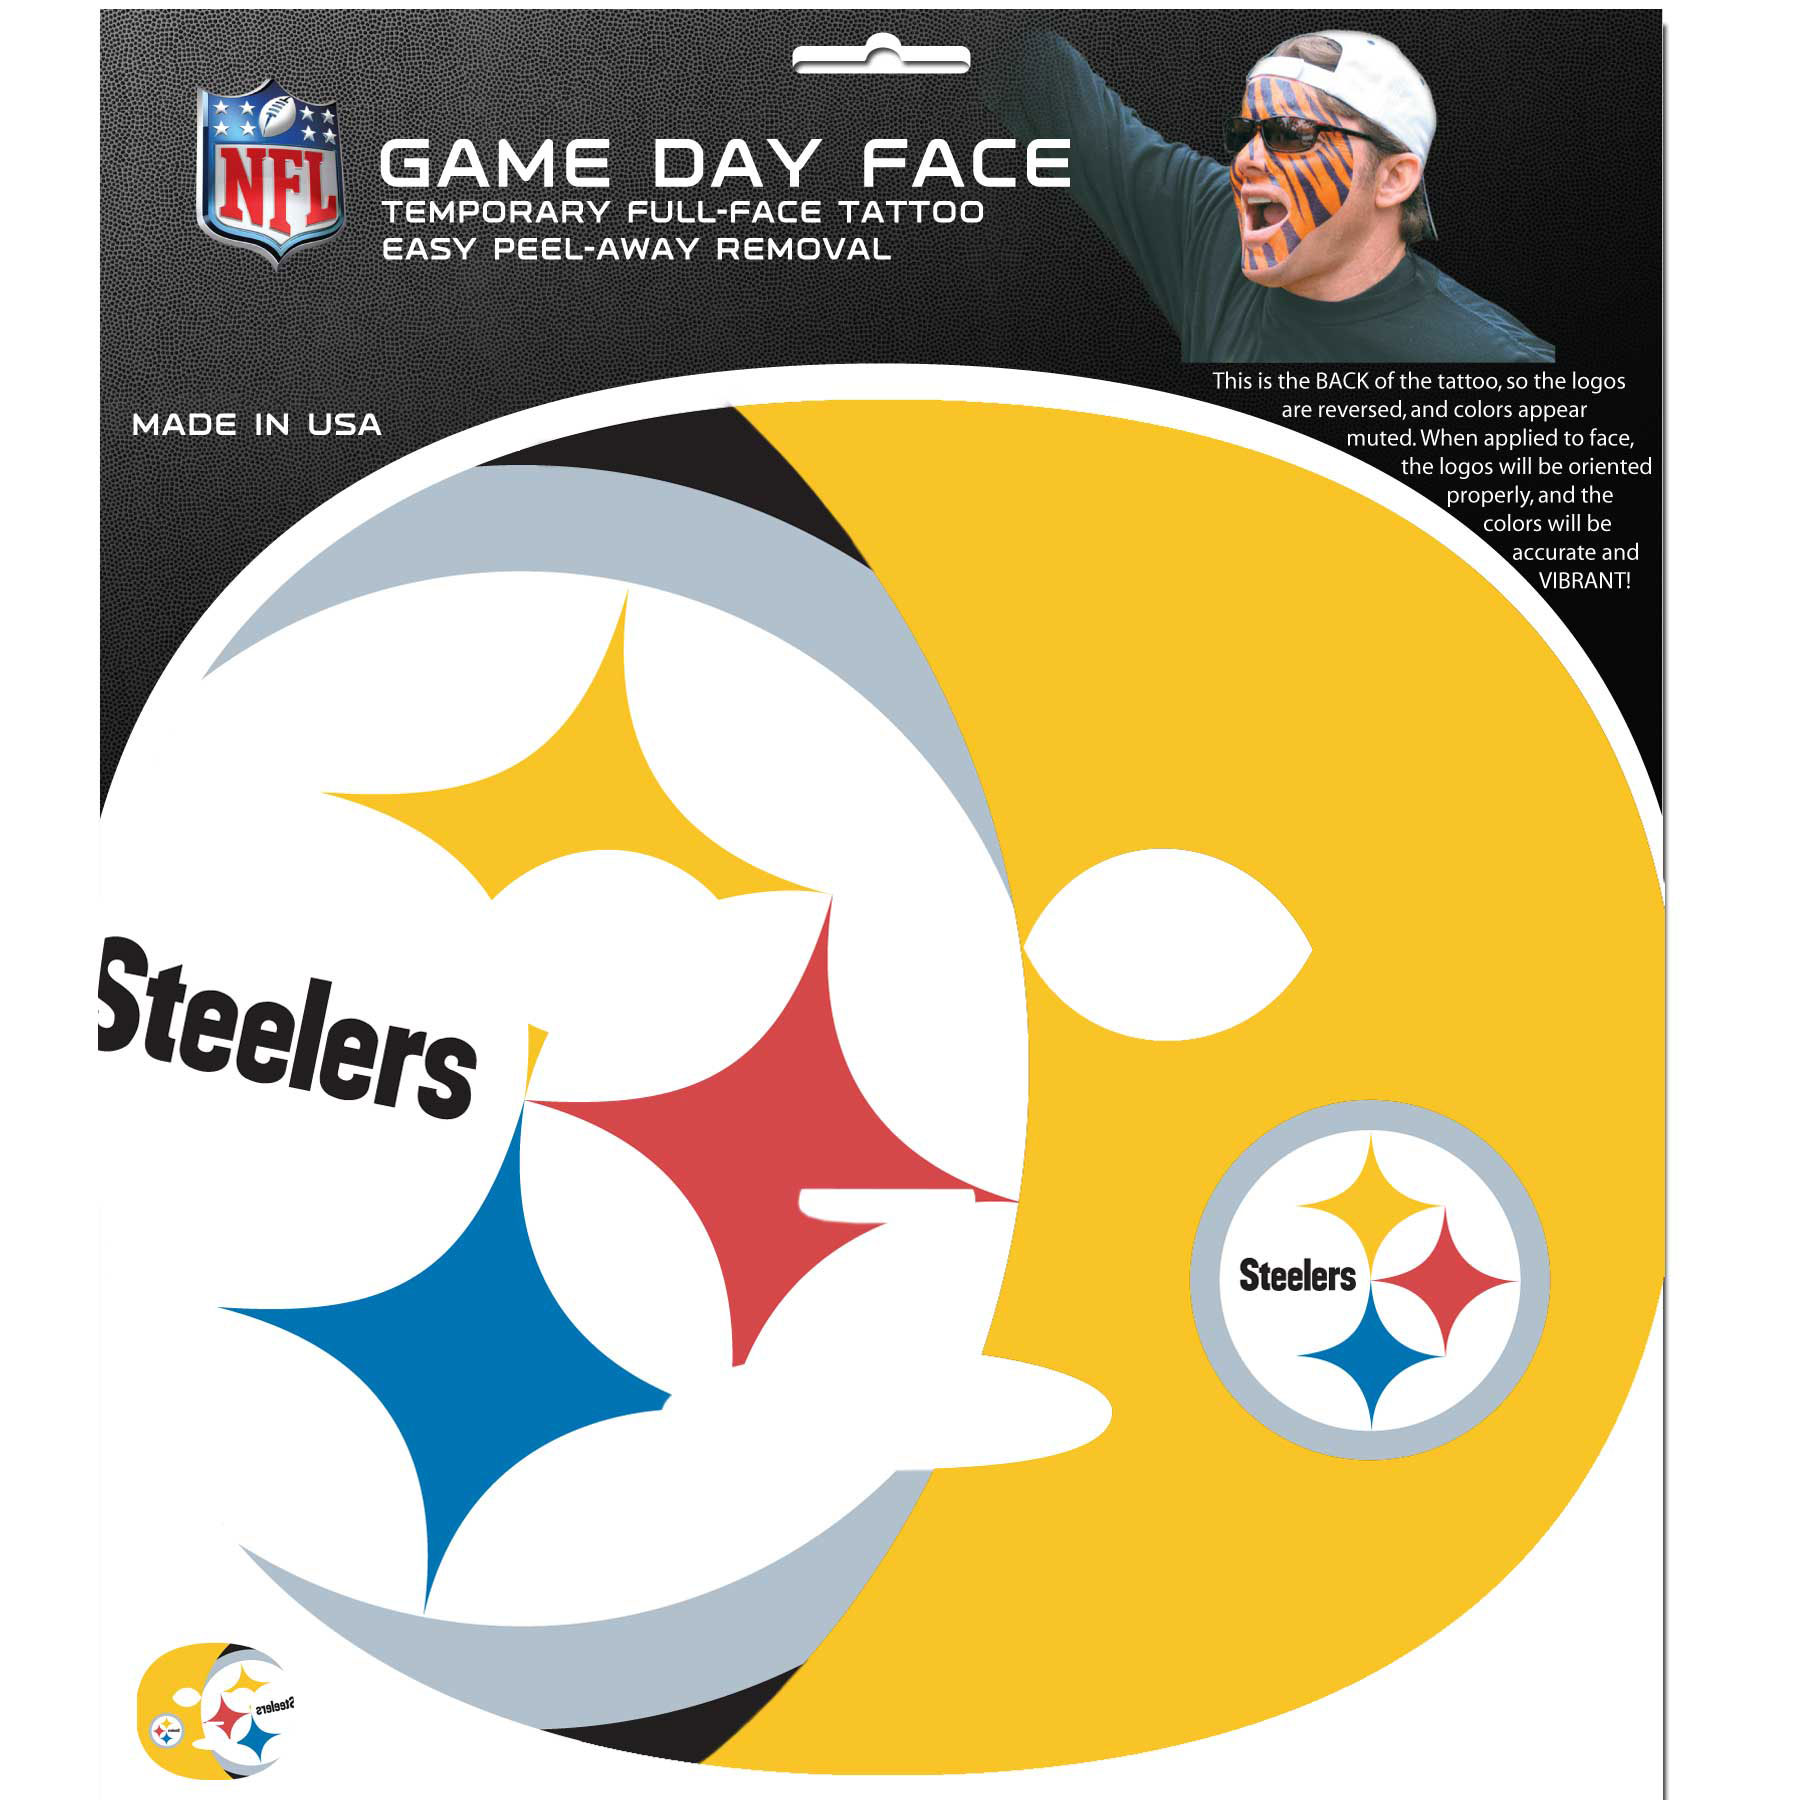 Pittsburgh Steelers Set of 4 Game Day Faces - No better way to show your team pride than by painting your face. Siskiyou's Game Day Face Temporary Tattoo isn't your typical face paint. It is a water based application that doesn't smudge, smear or sweat off while you're wearing it and easily peels off after you're done celebrating your team's big Win! The temporary tattoo is large enough to trim down to fit your face. Our Game Day Face Temporary Tattoo's are fun for fans of all ages. You may have seen our product before, these are the same Temporary Face Tattoos as pitched on ABC's Shark Tank.